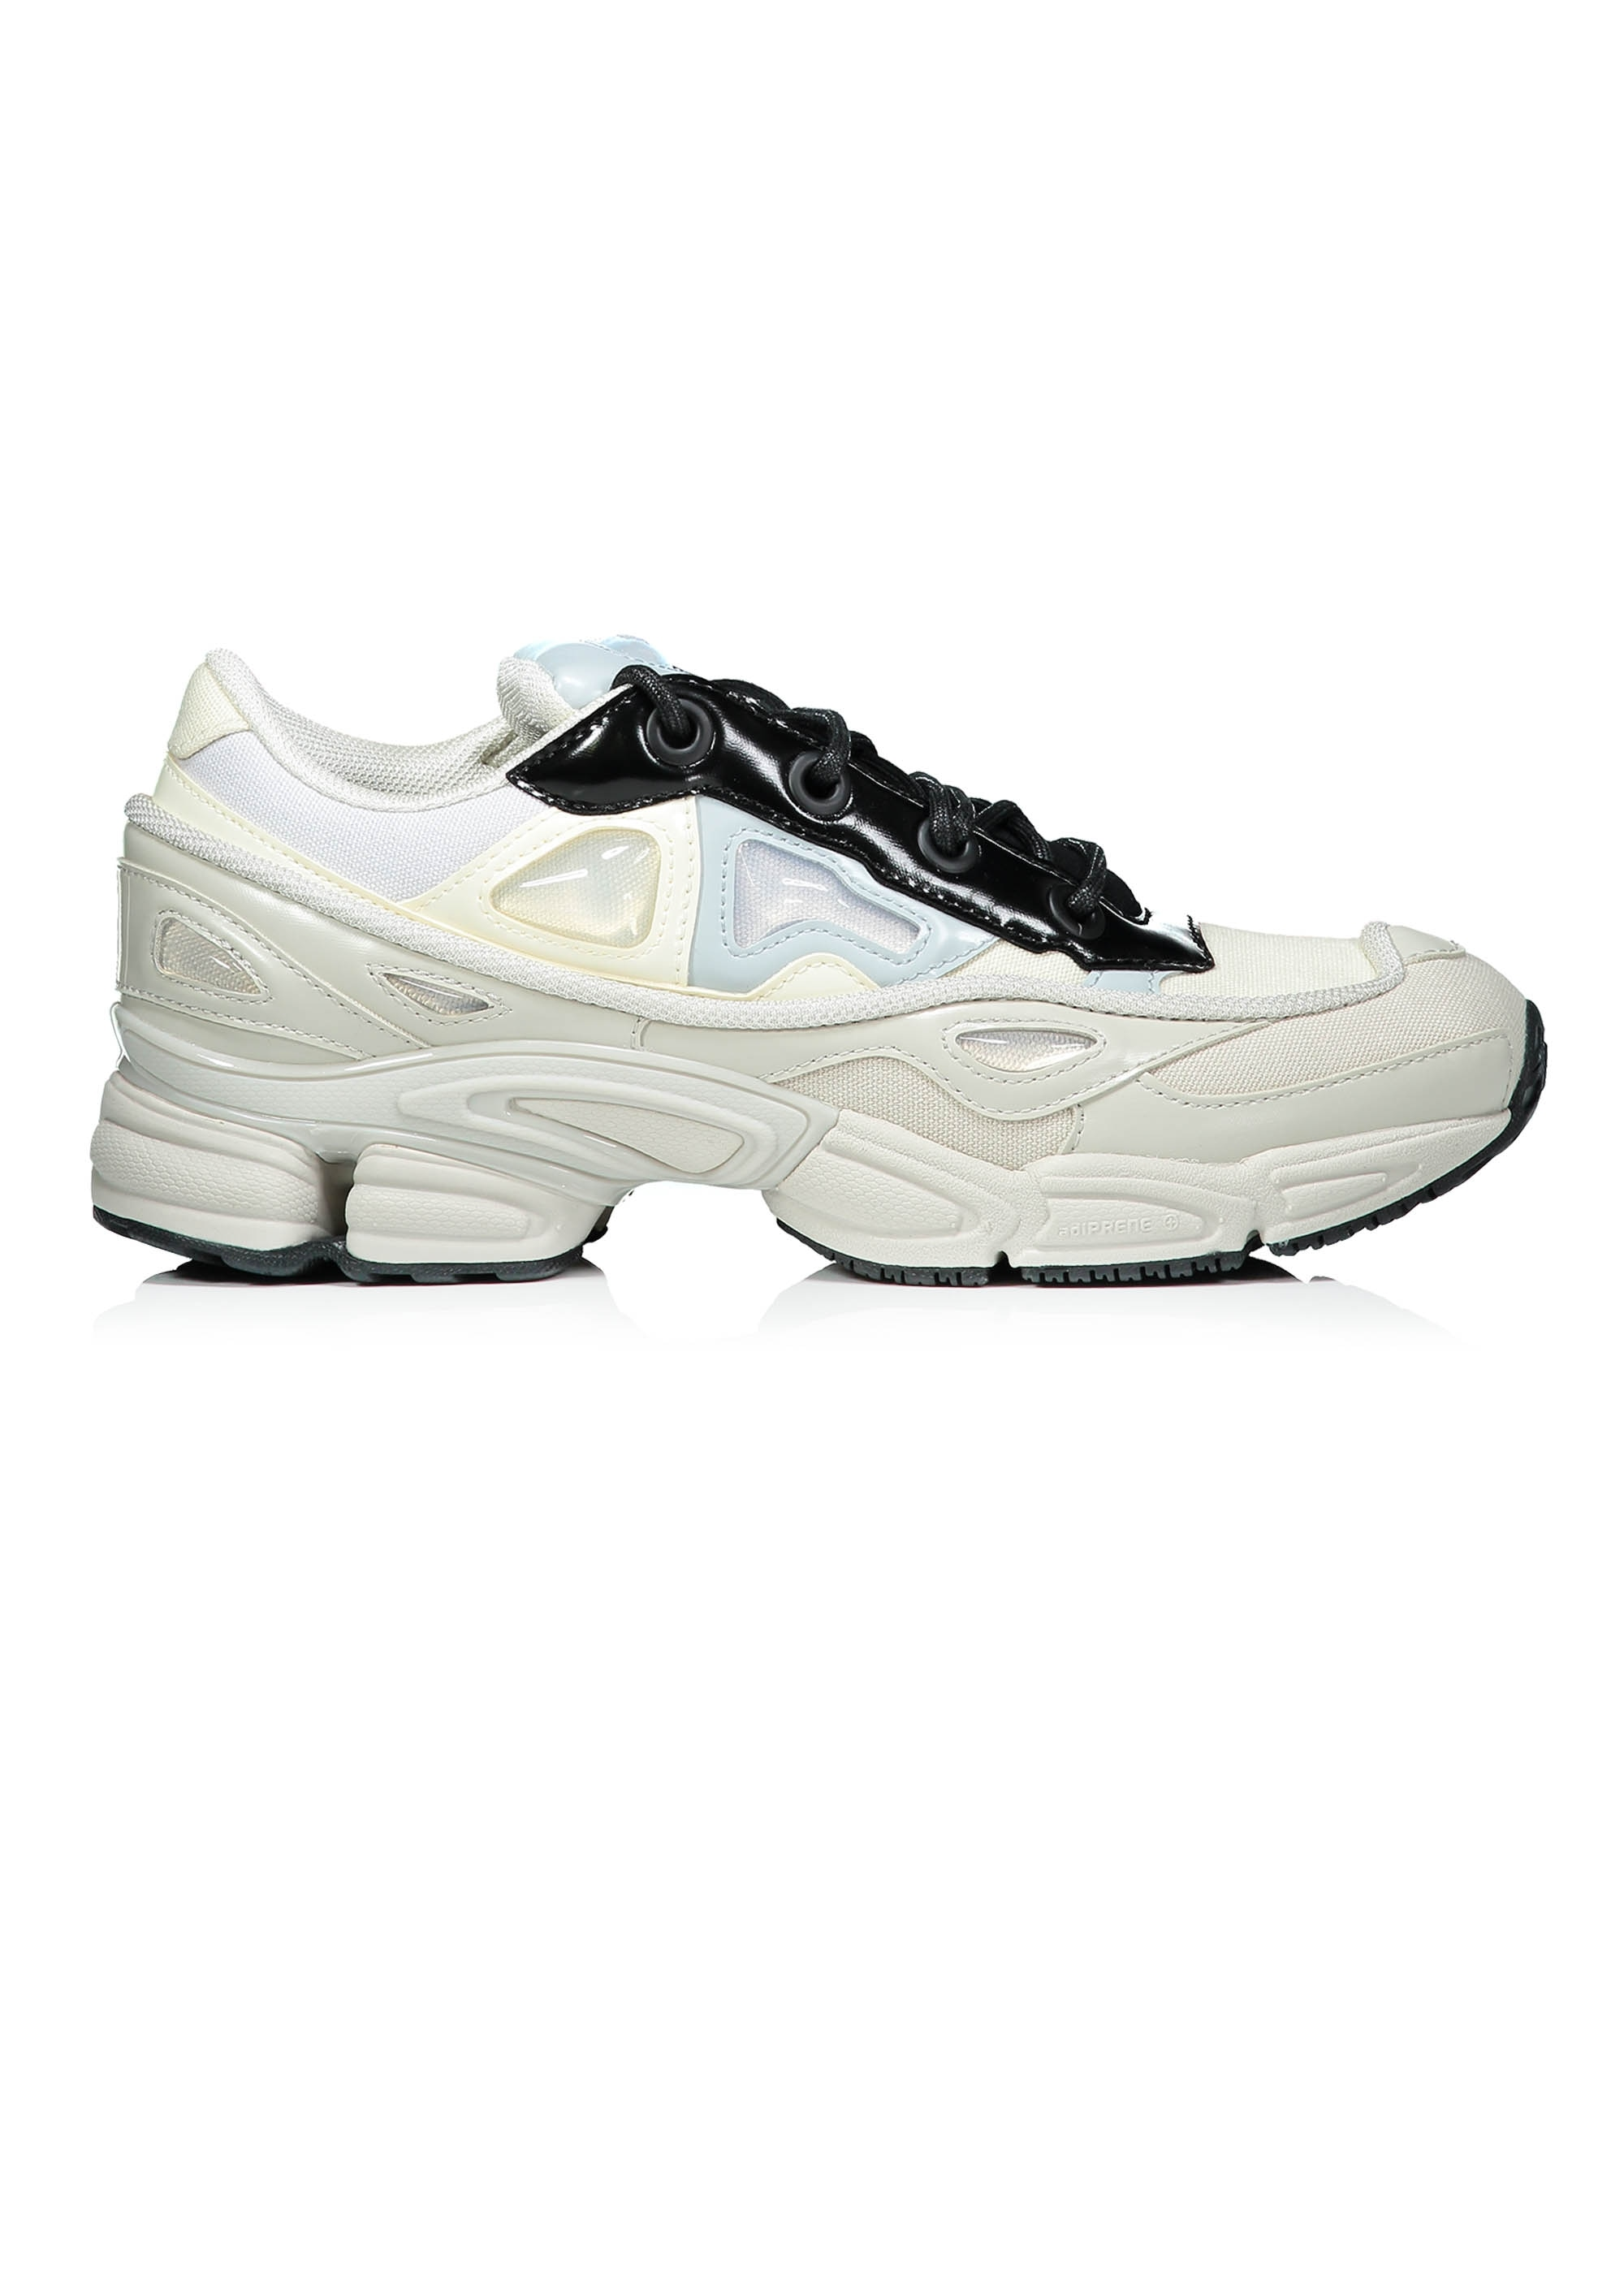 33a161408dcc adidas by Raf Simons Ozweego III - Cream White - Triads Mens from ...